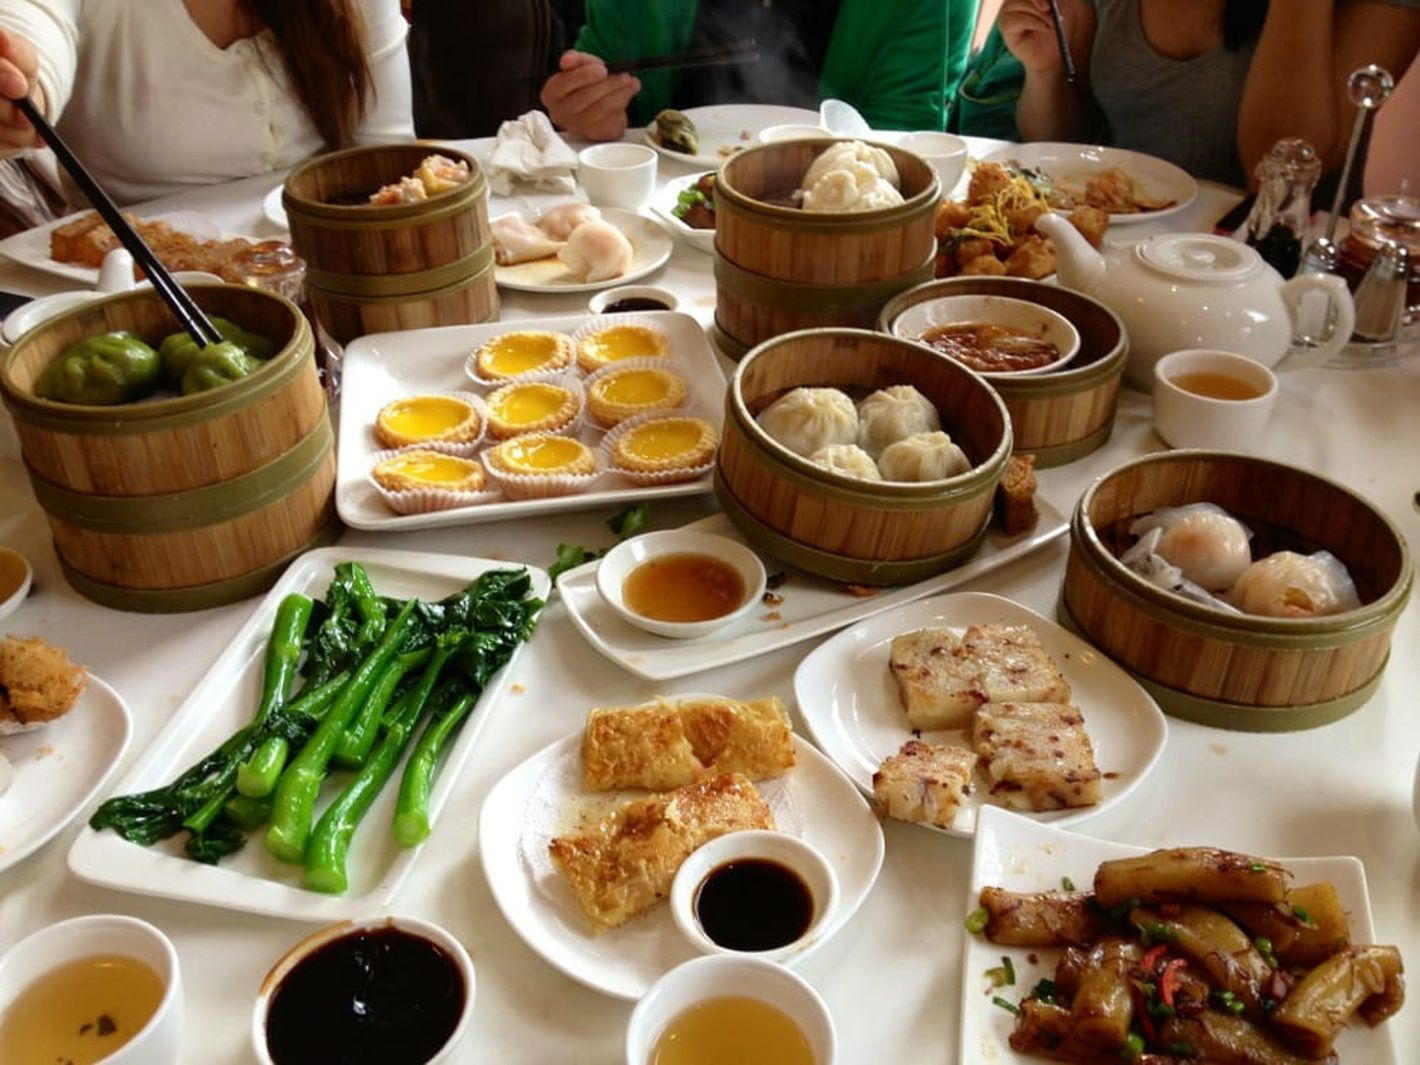 The City S Best Restaurants For Chinese Feasting Chinese Restaurant Best Chinese Food San Francisco Food